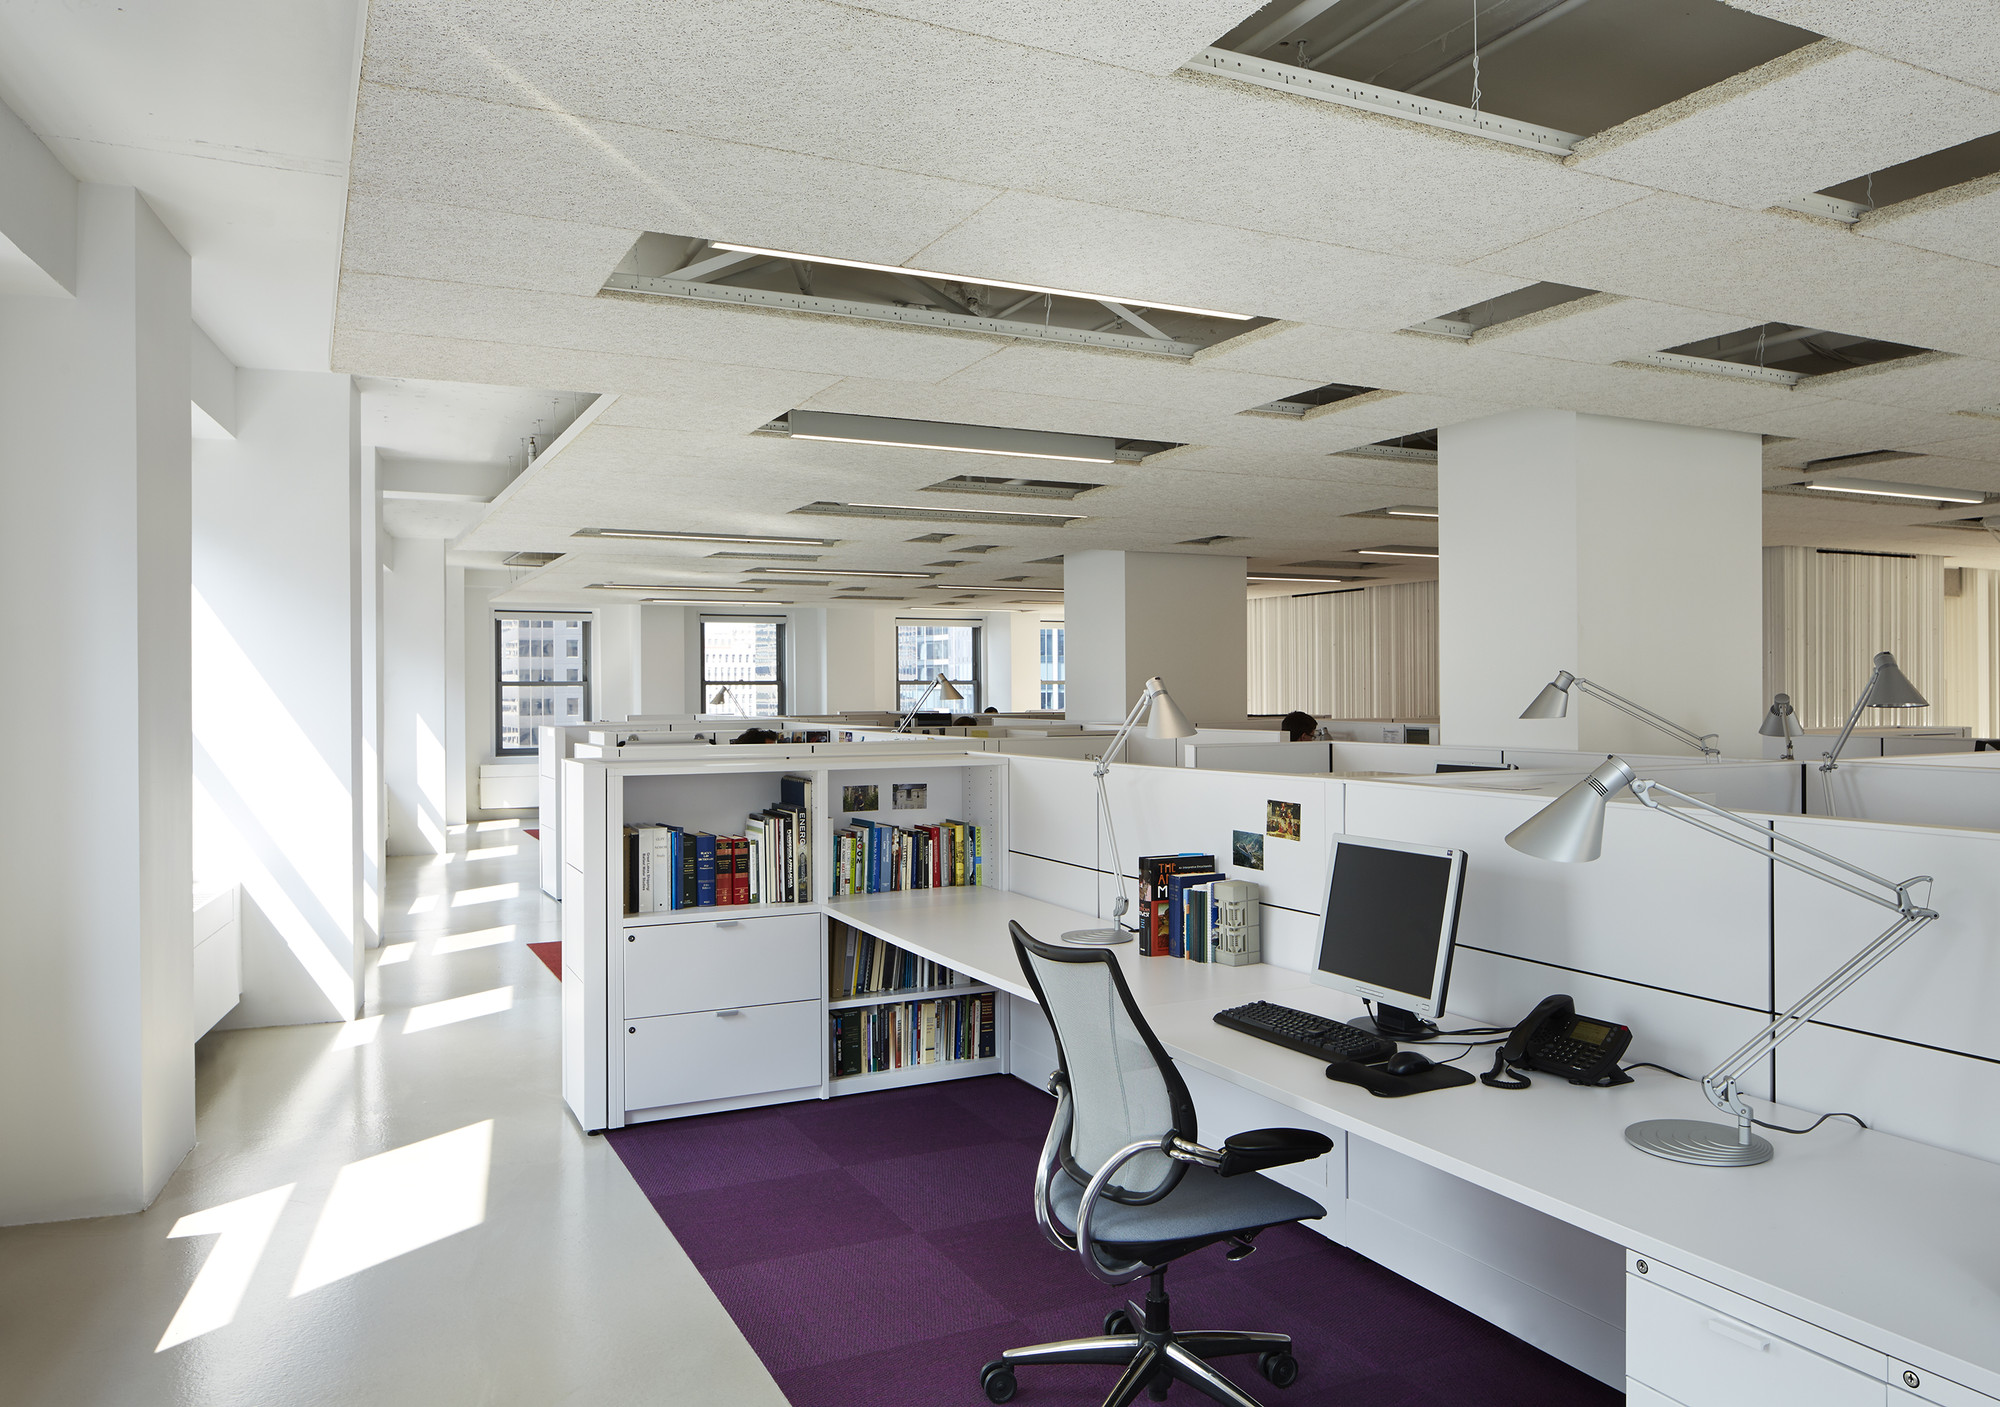 Gallery of natural resources defence council office for Interior design resources